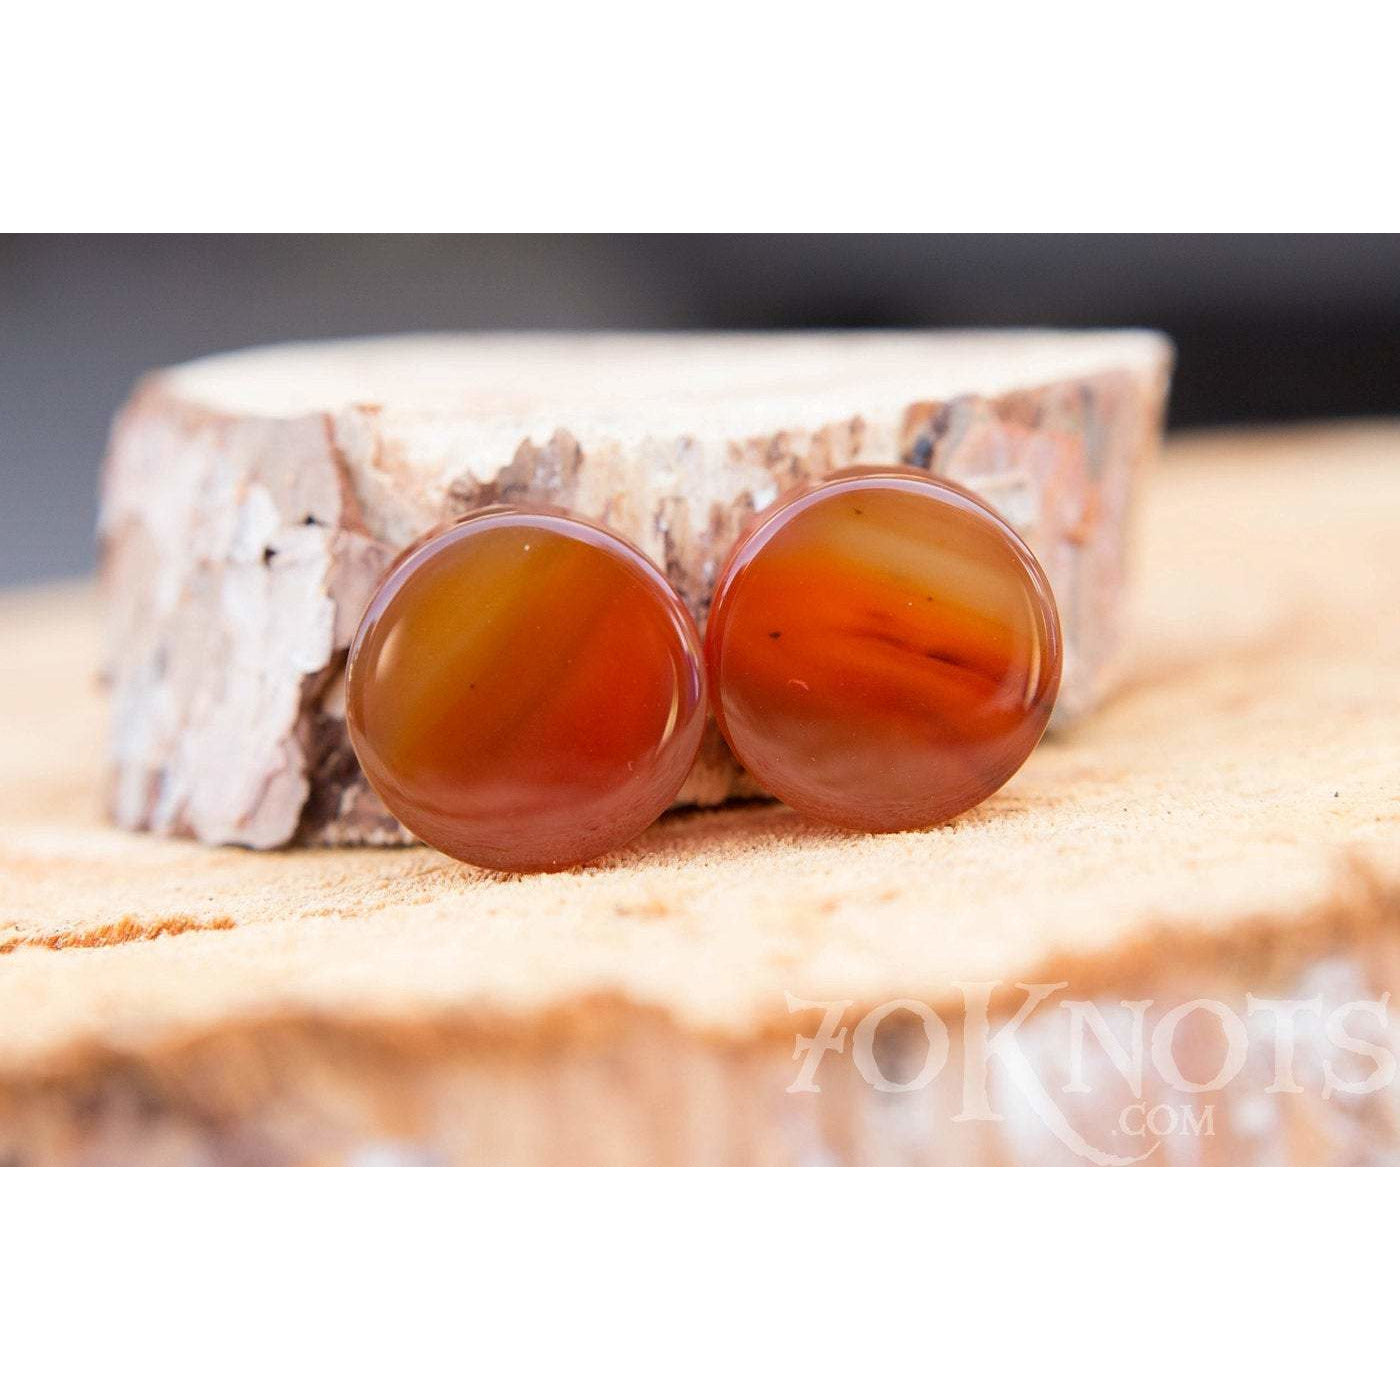 Red Agate Double Flared Plugs, Pair - 70 Knots